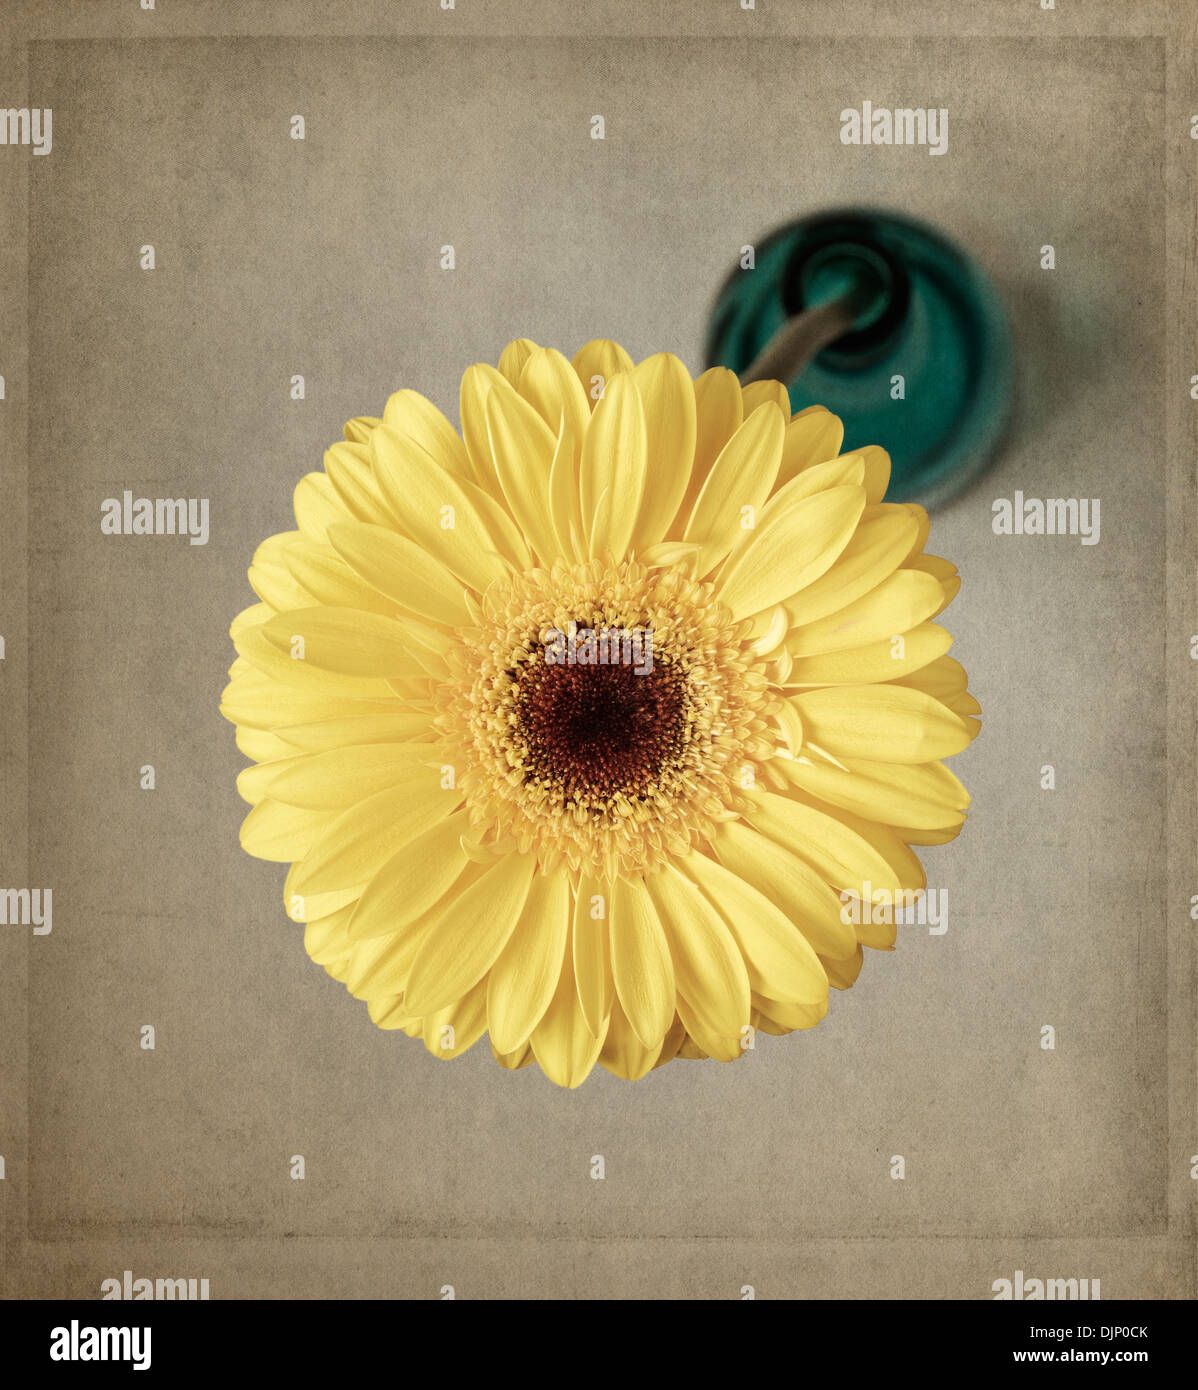 Yellow gerbera in blue vase with texture overlay - Stock Image